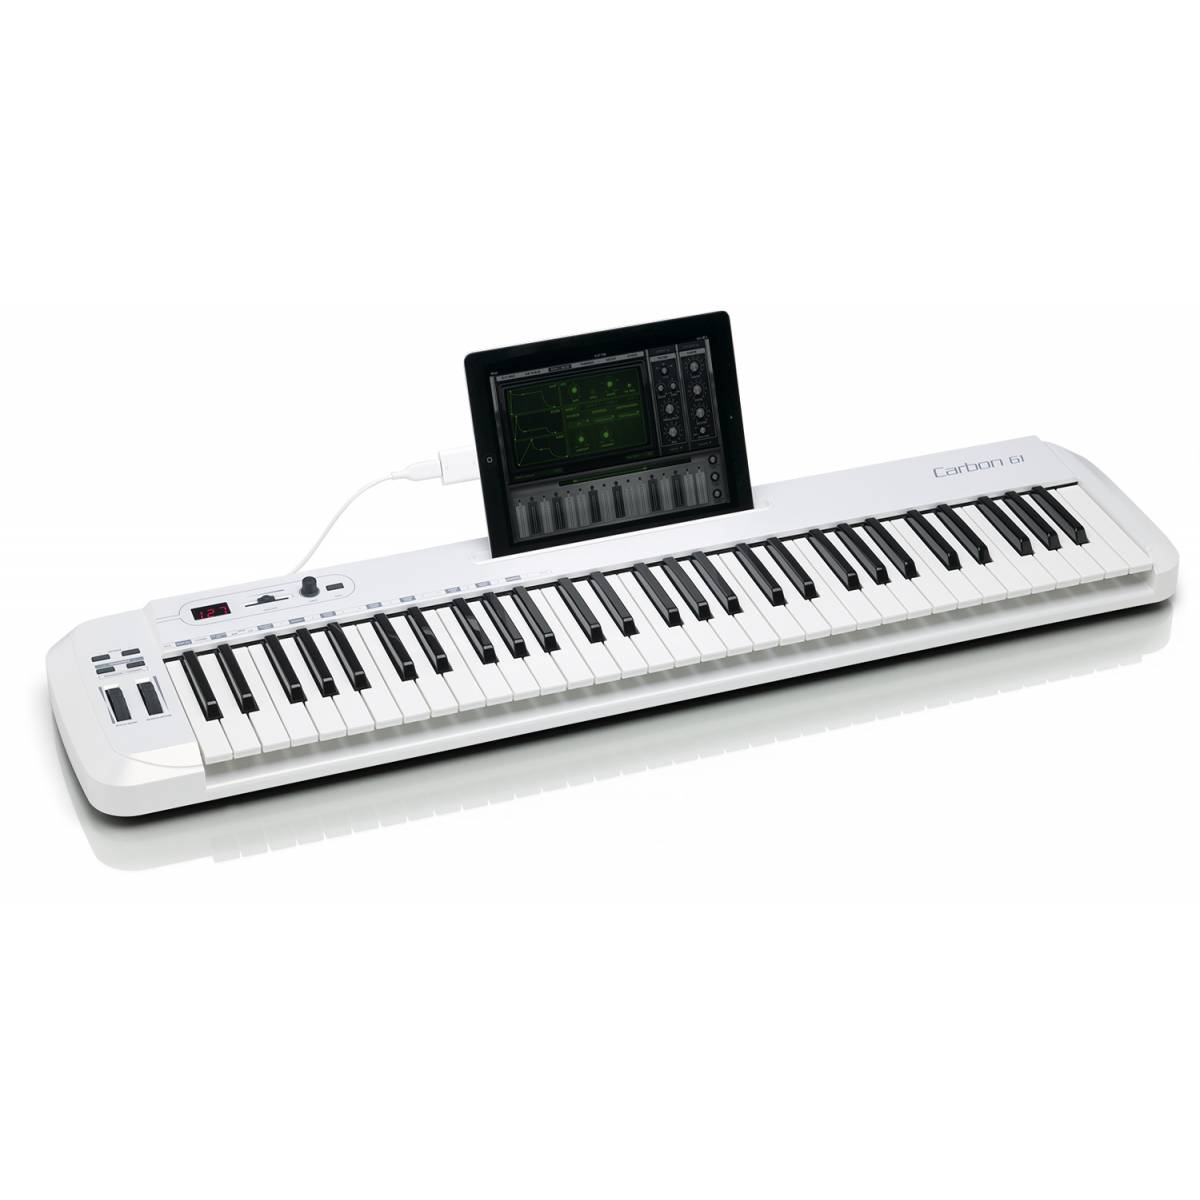 samson carbon 61 usb midi controller keyboard. Black Bedroom Furniture Sets. Home Design Ideas